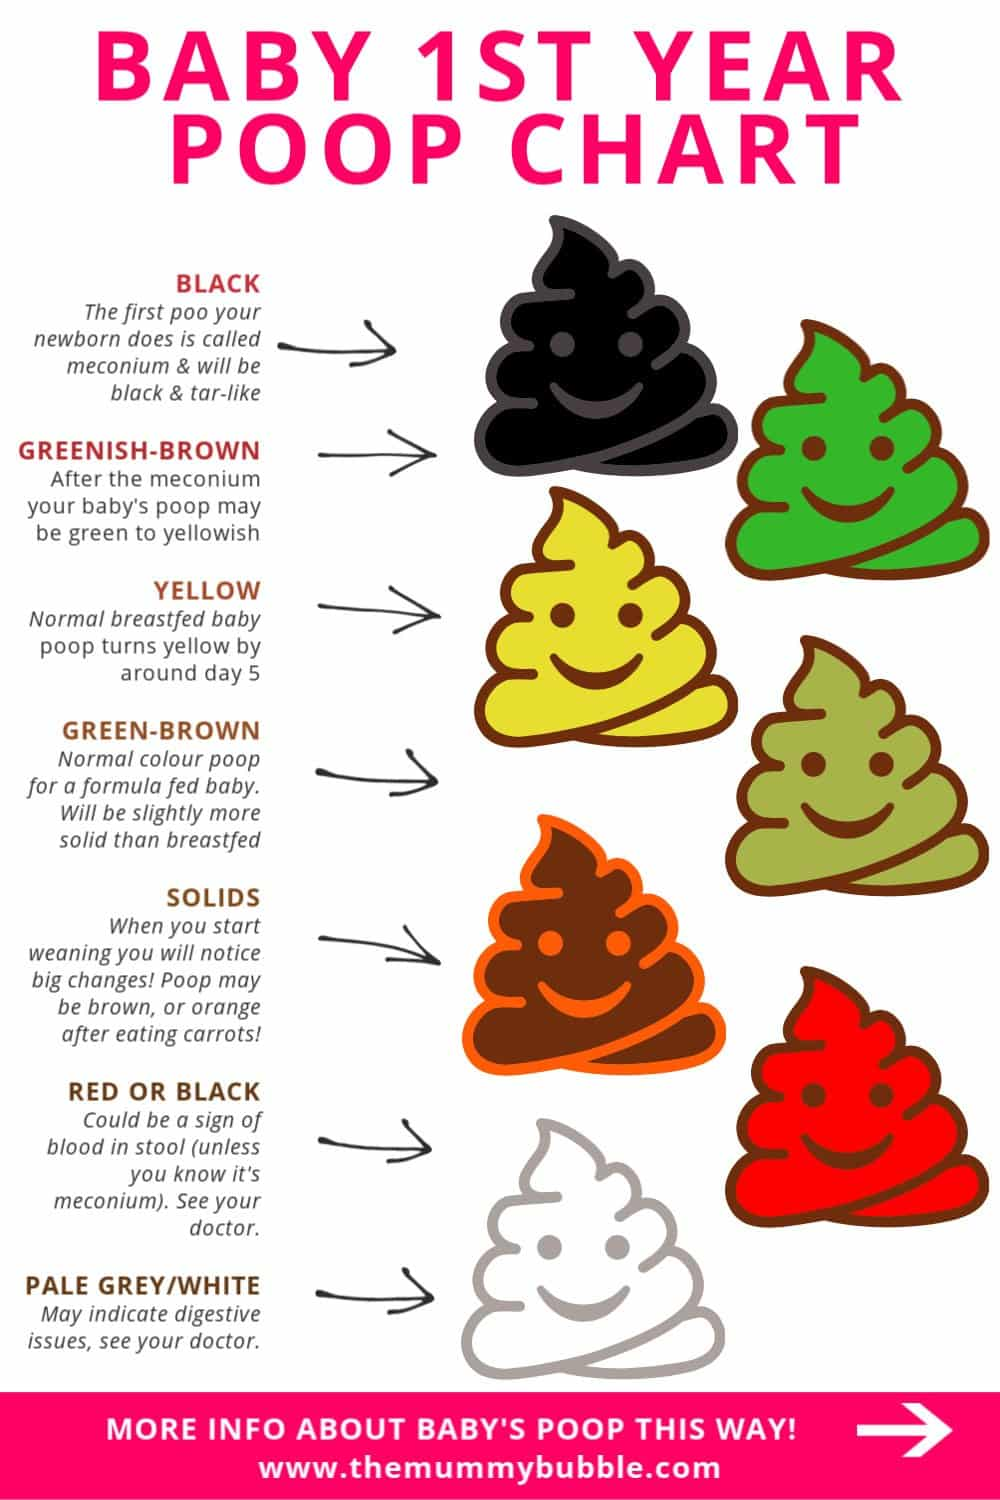 Baby poop chart - a guide to baby's poo in the first year